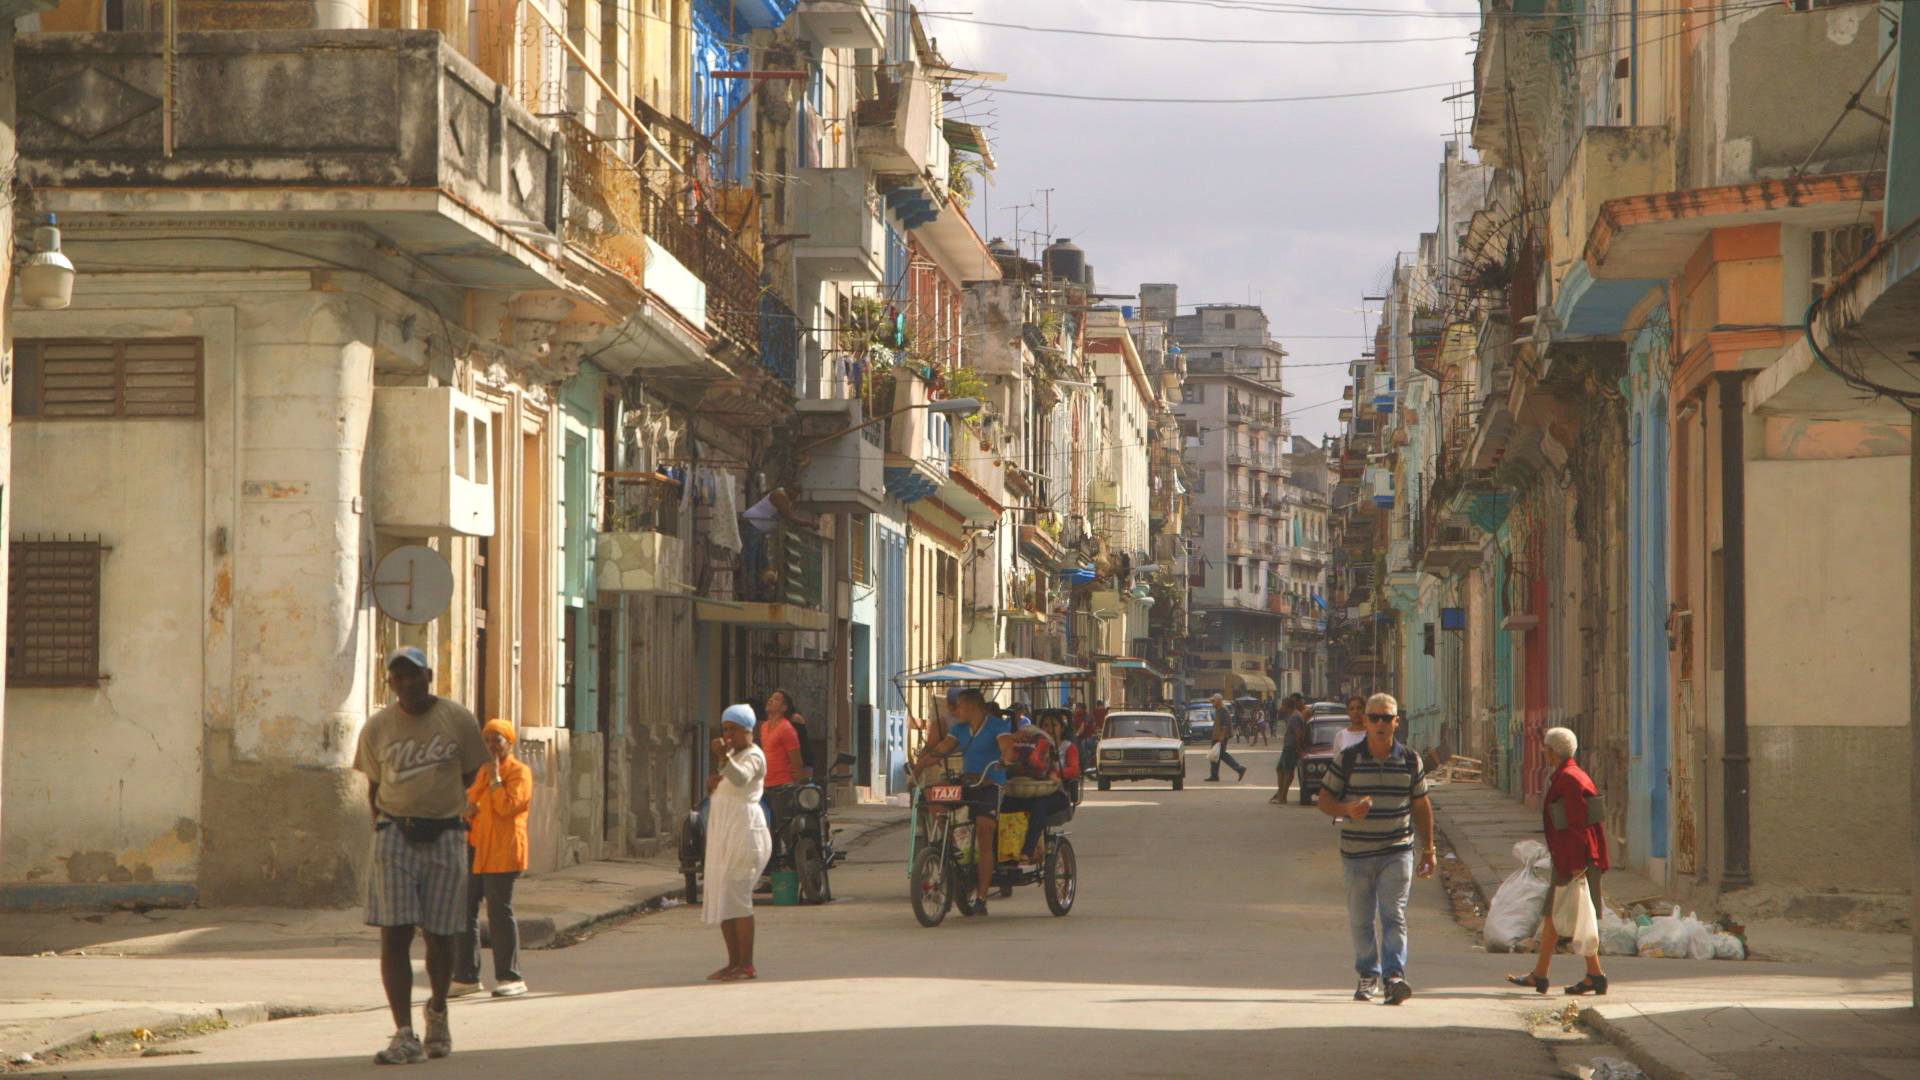 CUBA- Havana Calle.